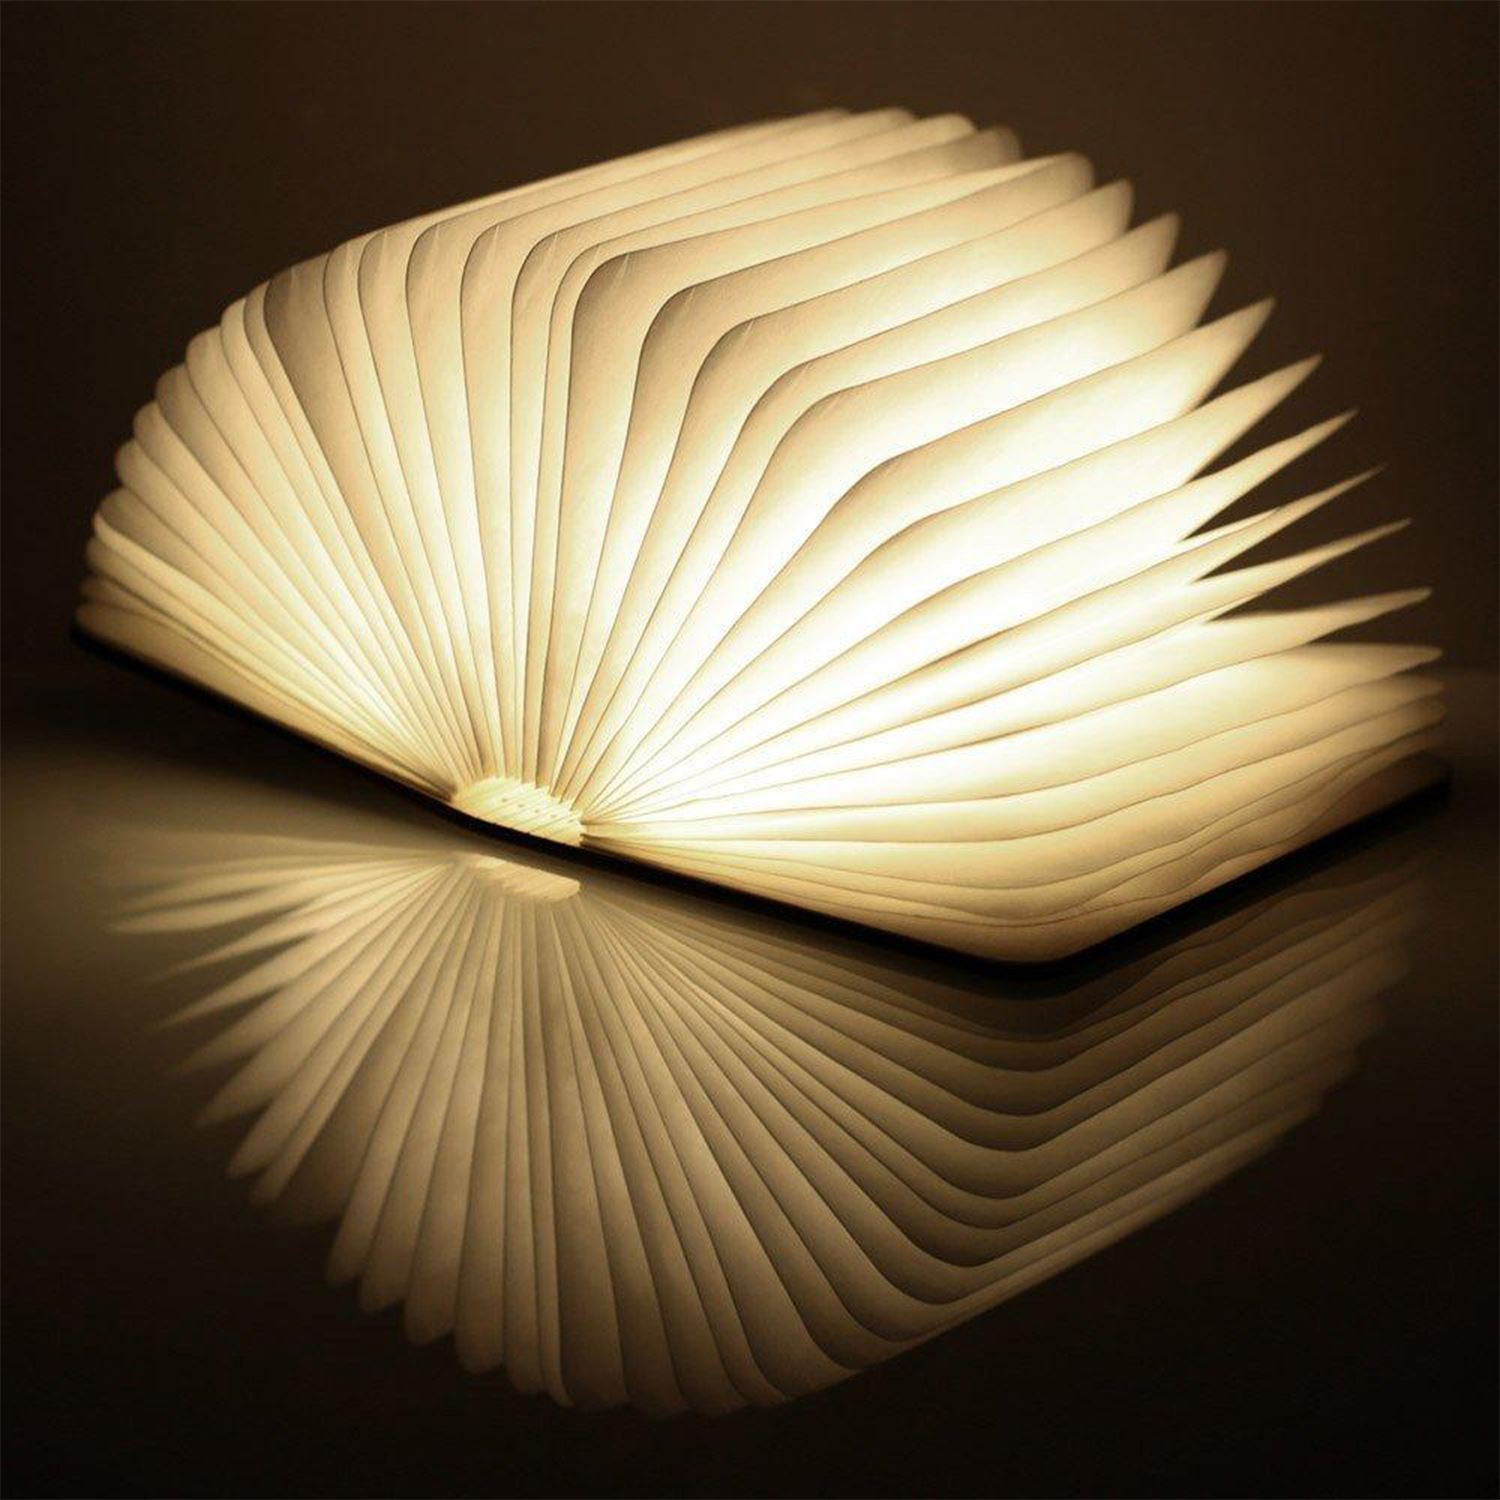 LED-Wood-Leather-Effect-Book-Desk-Lamp-Gingko-USB-Rechargeable-360-Light miniatuur 31